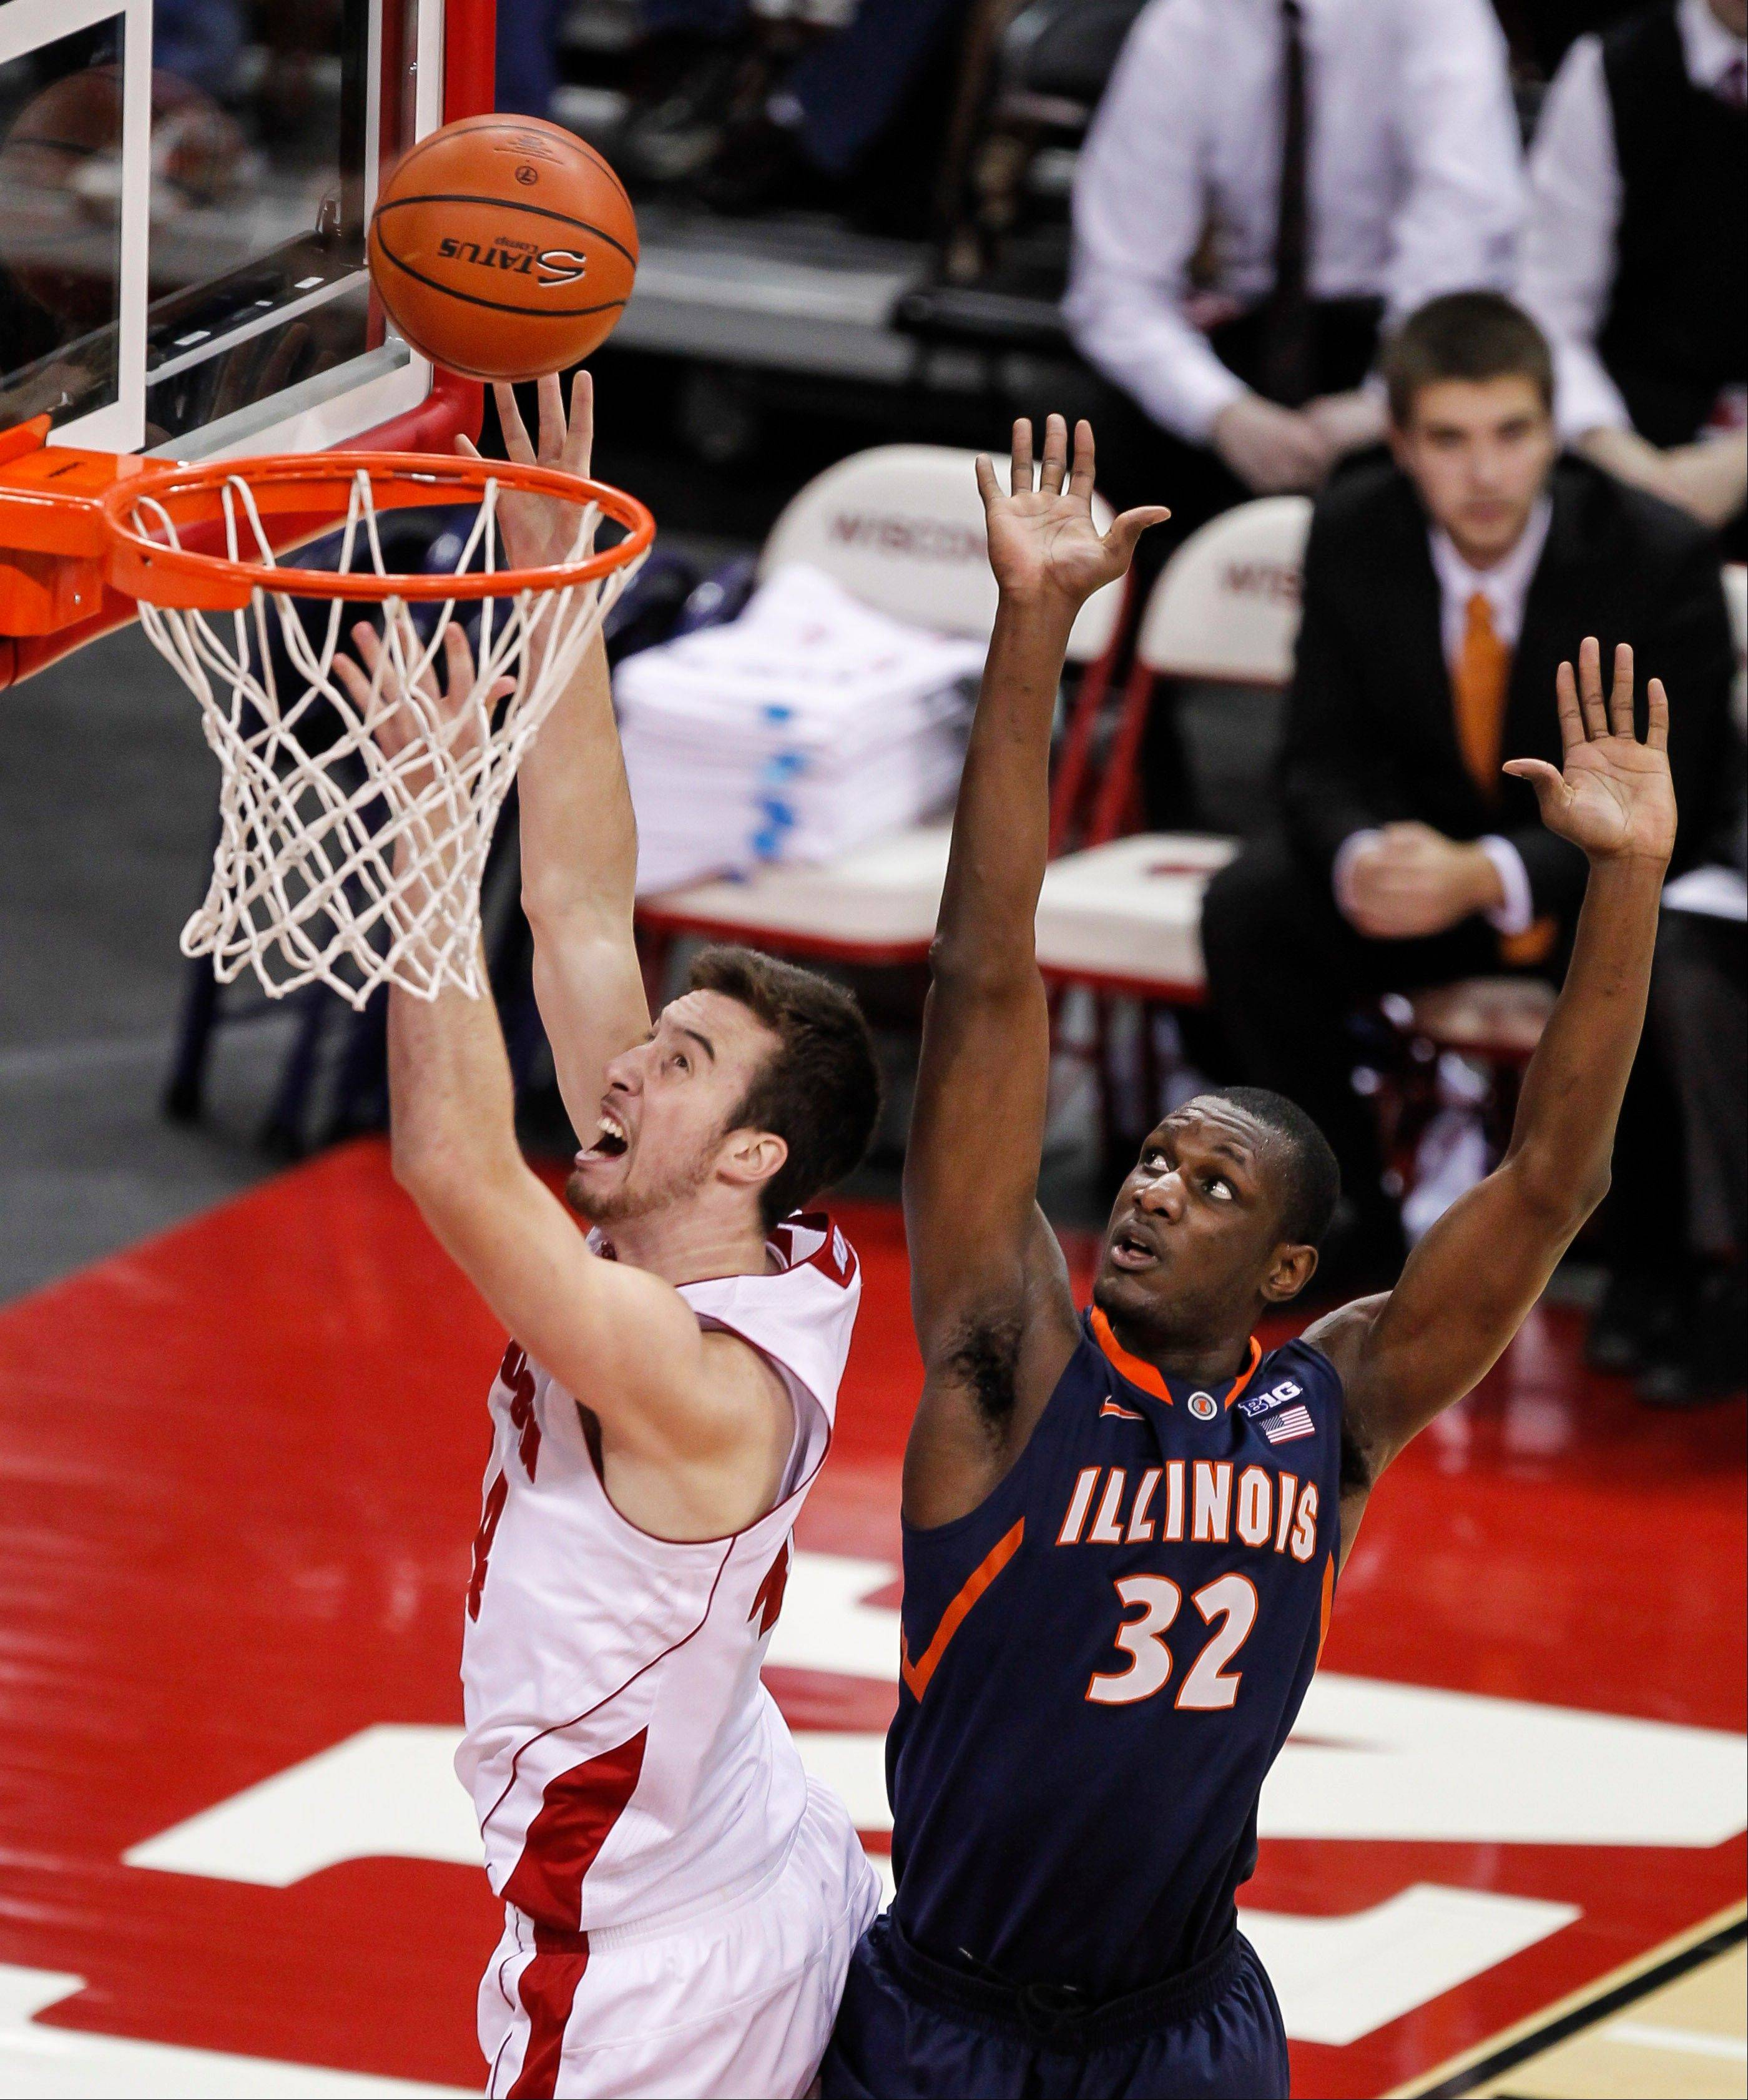 Wisconsin's Frank Kaminsky shoots against Illinois' Nnanna Egwu during the first half of an NCAA college basketball game Wednesday, Jan. 8, 2014, in Madison, Wis. Egwu fouled Kaminsky on the play.